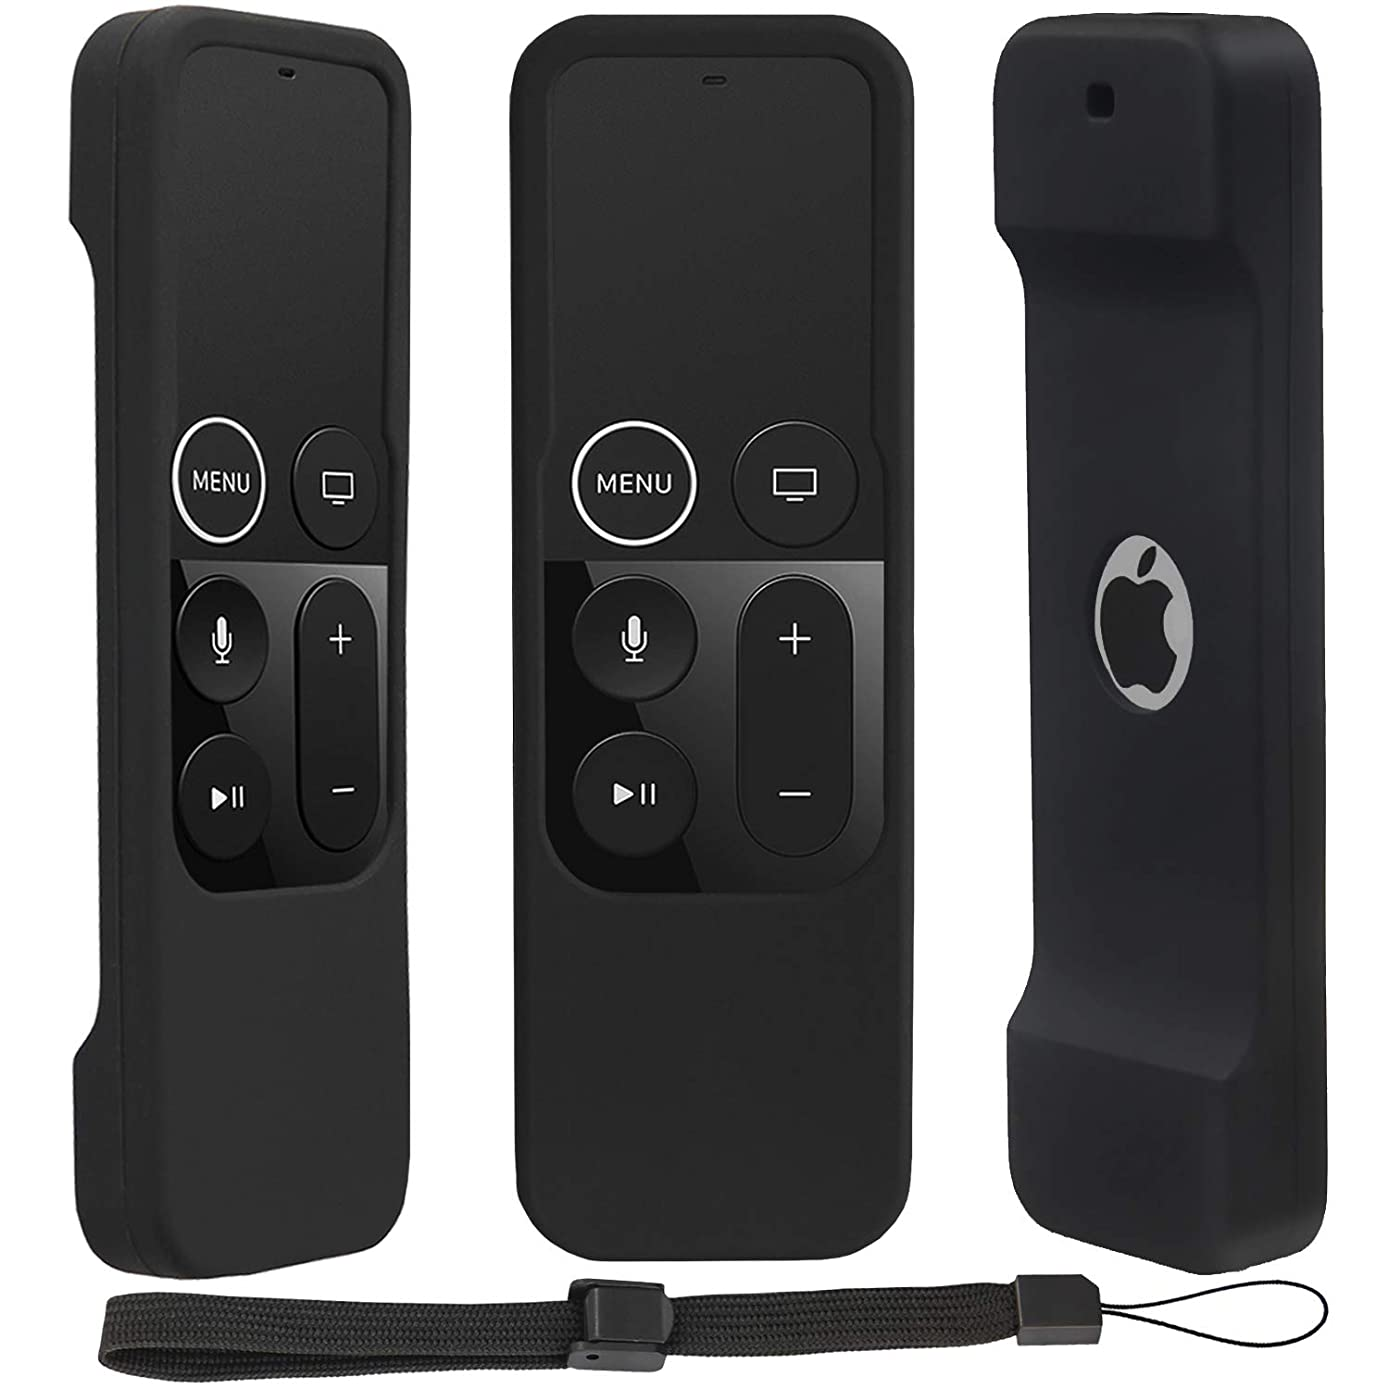 Remote Case for Apple TV 4K/4th Gen, Lightweight Anti-Slip & Secure Protective Cover for Apple TV 4K Siri Remote Controller with Hooks - Black